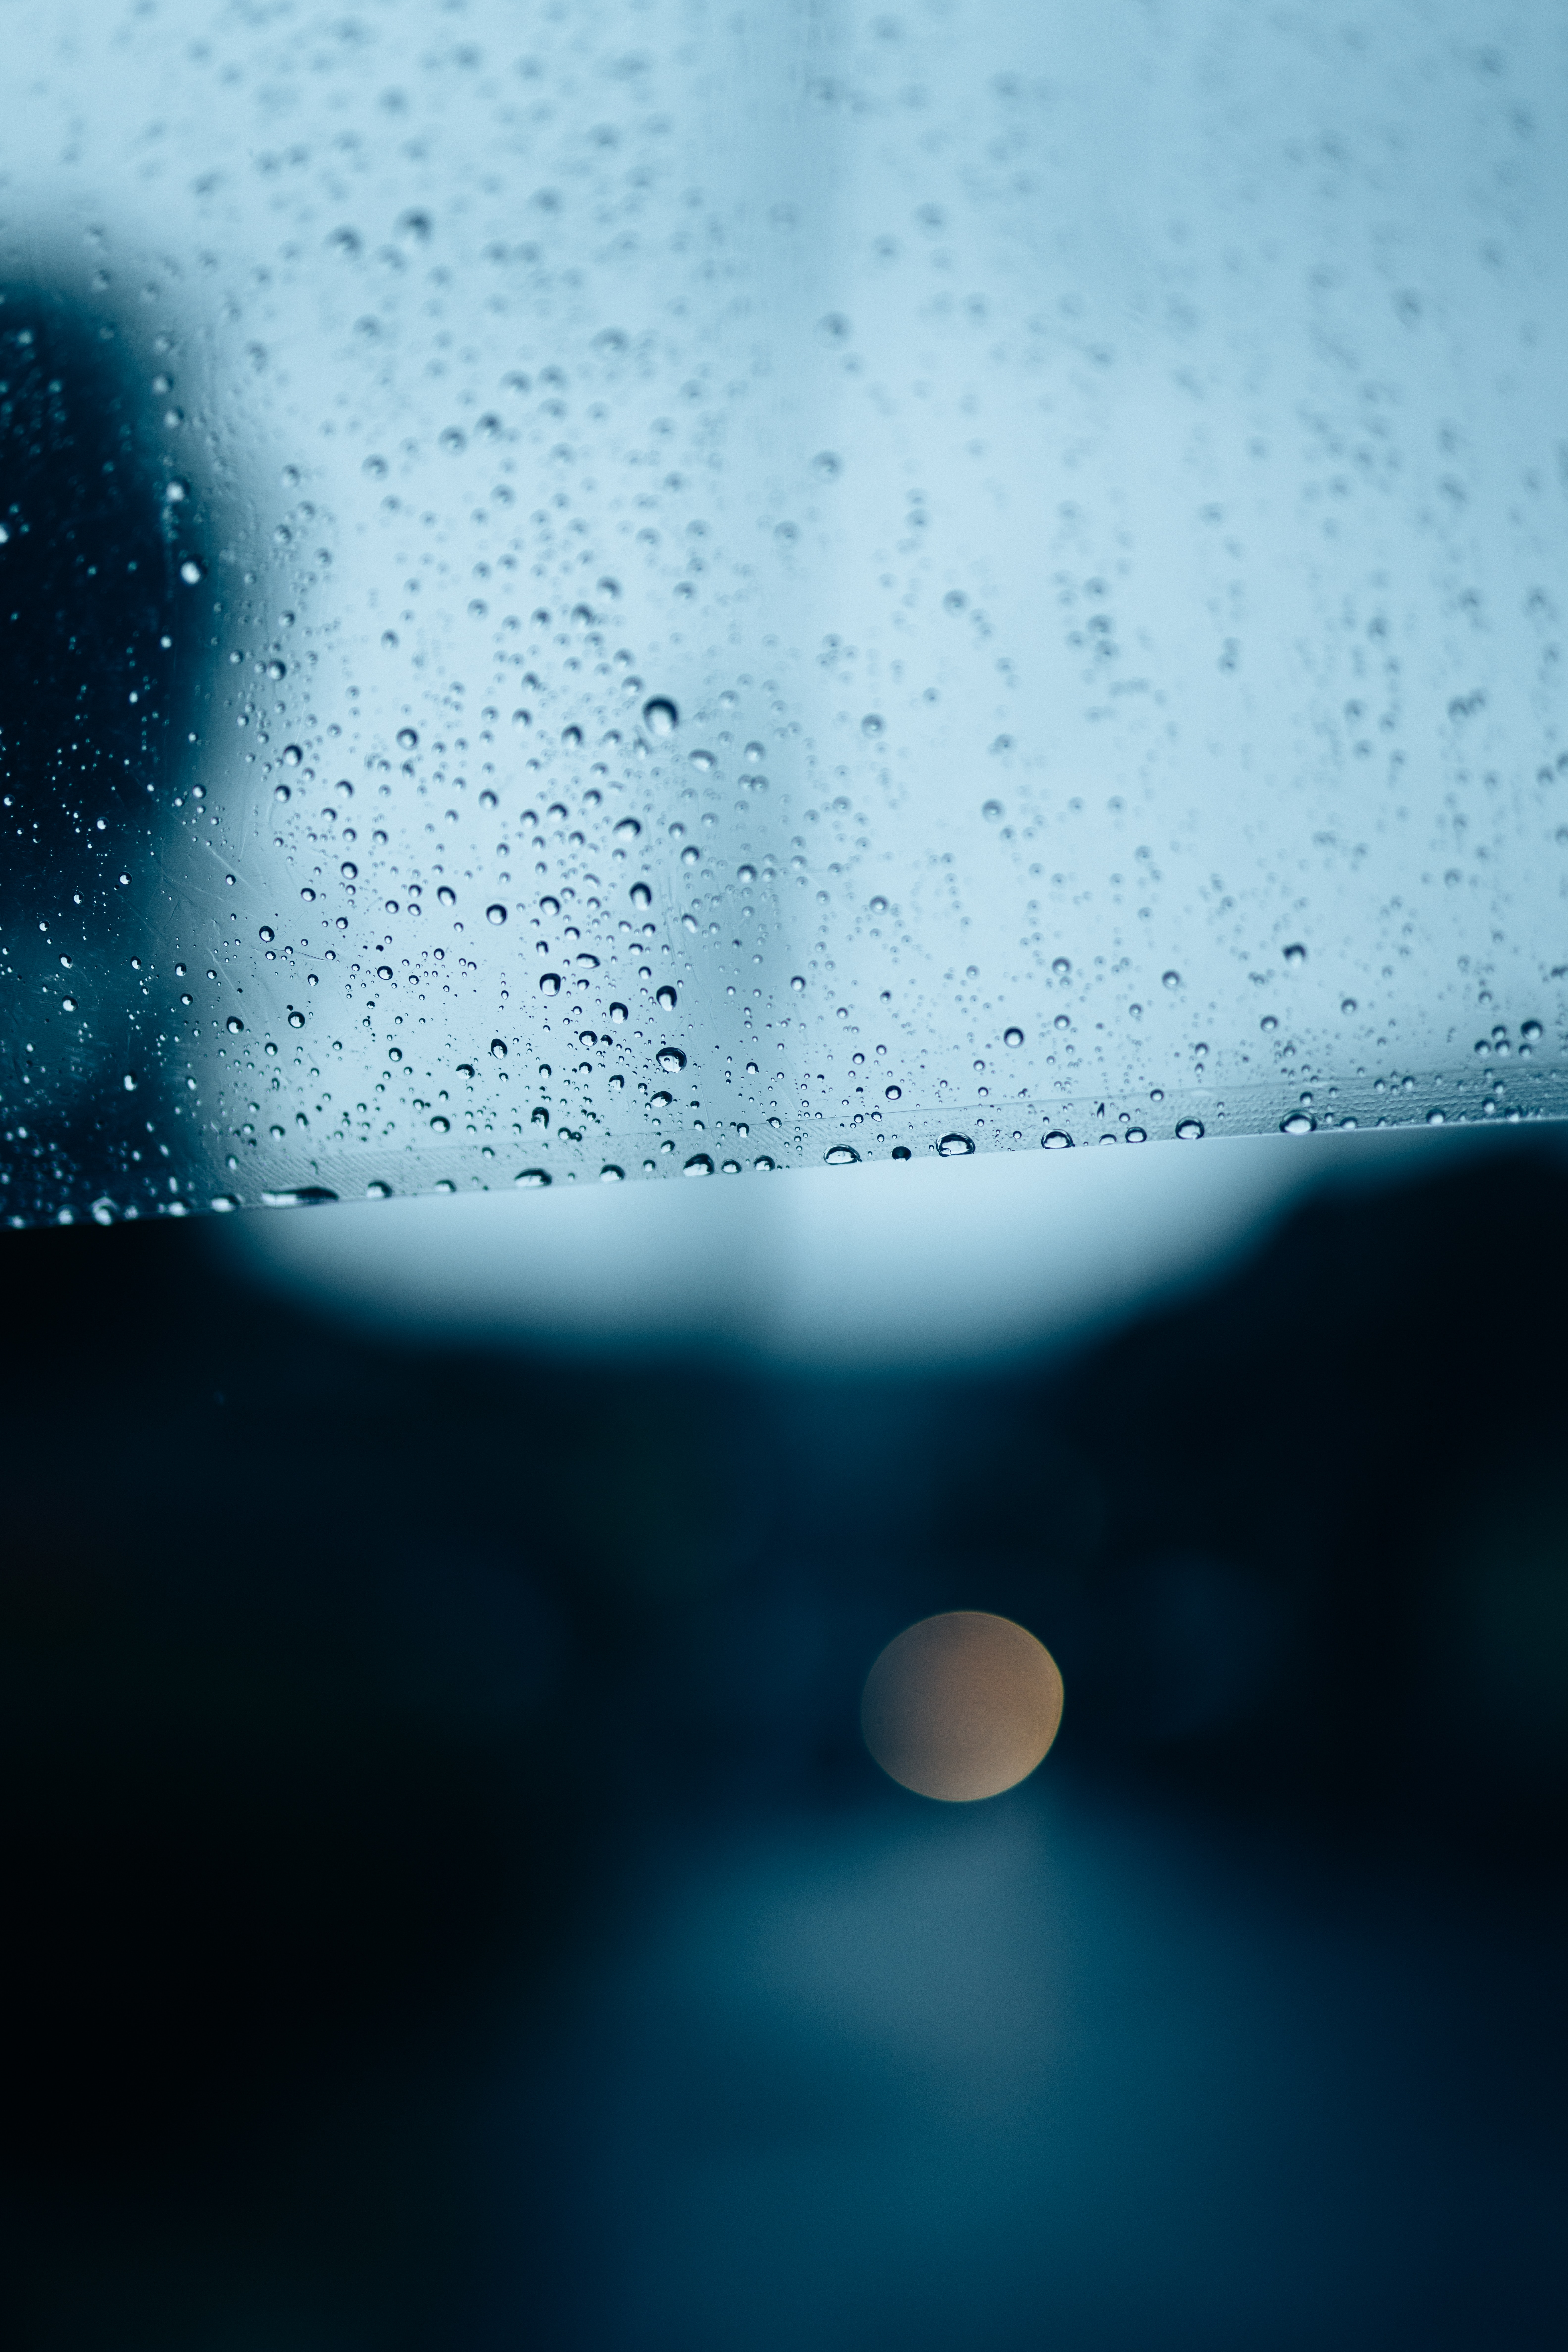 146424 download wallpaper Macro, Drops, Rain, Blur, Smooth screensavers and pictures for free